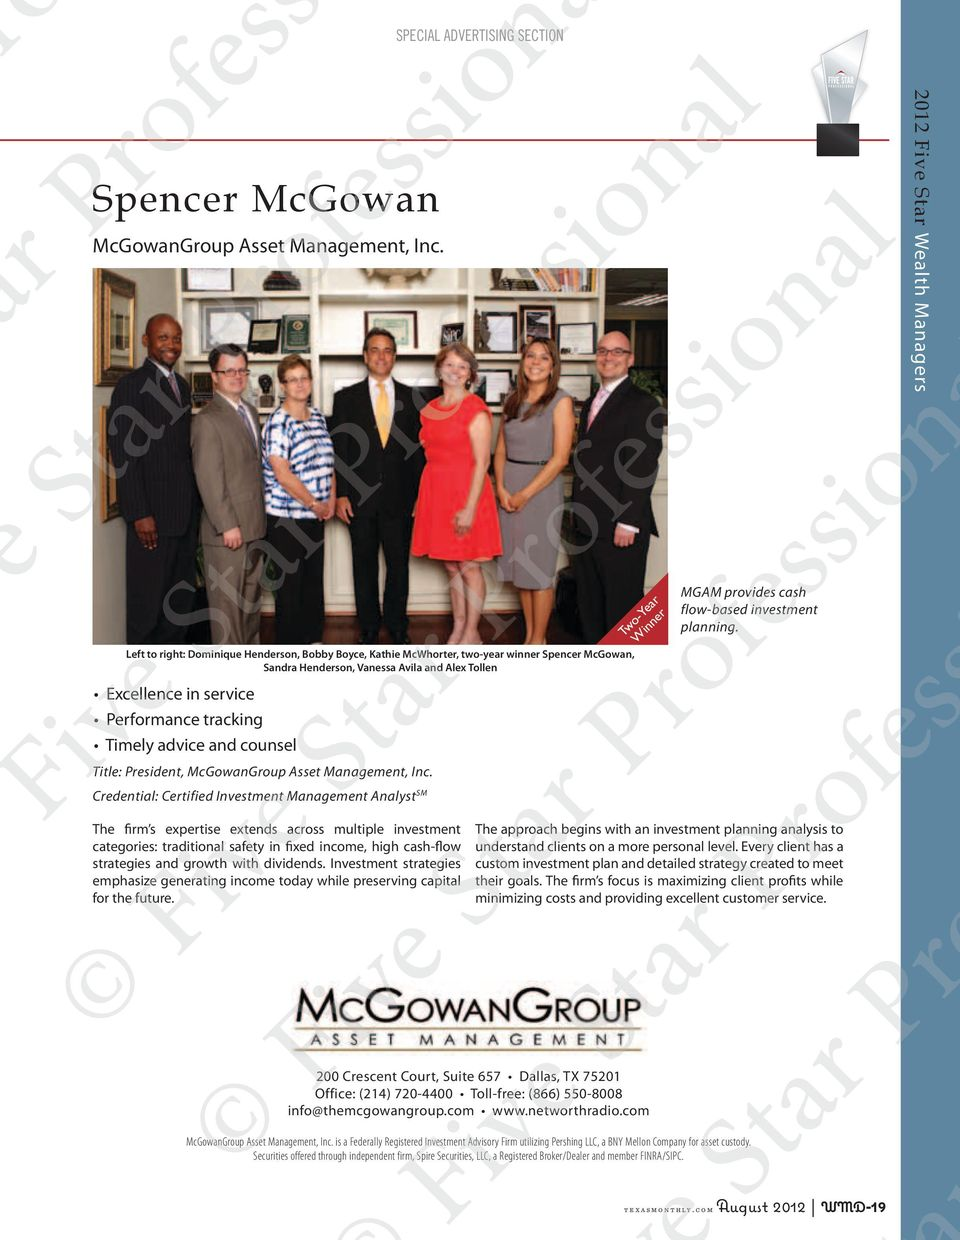 advice and counsel Title: President, McGowanGroup Asset Management, Inc.